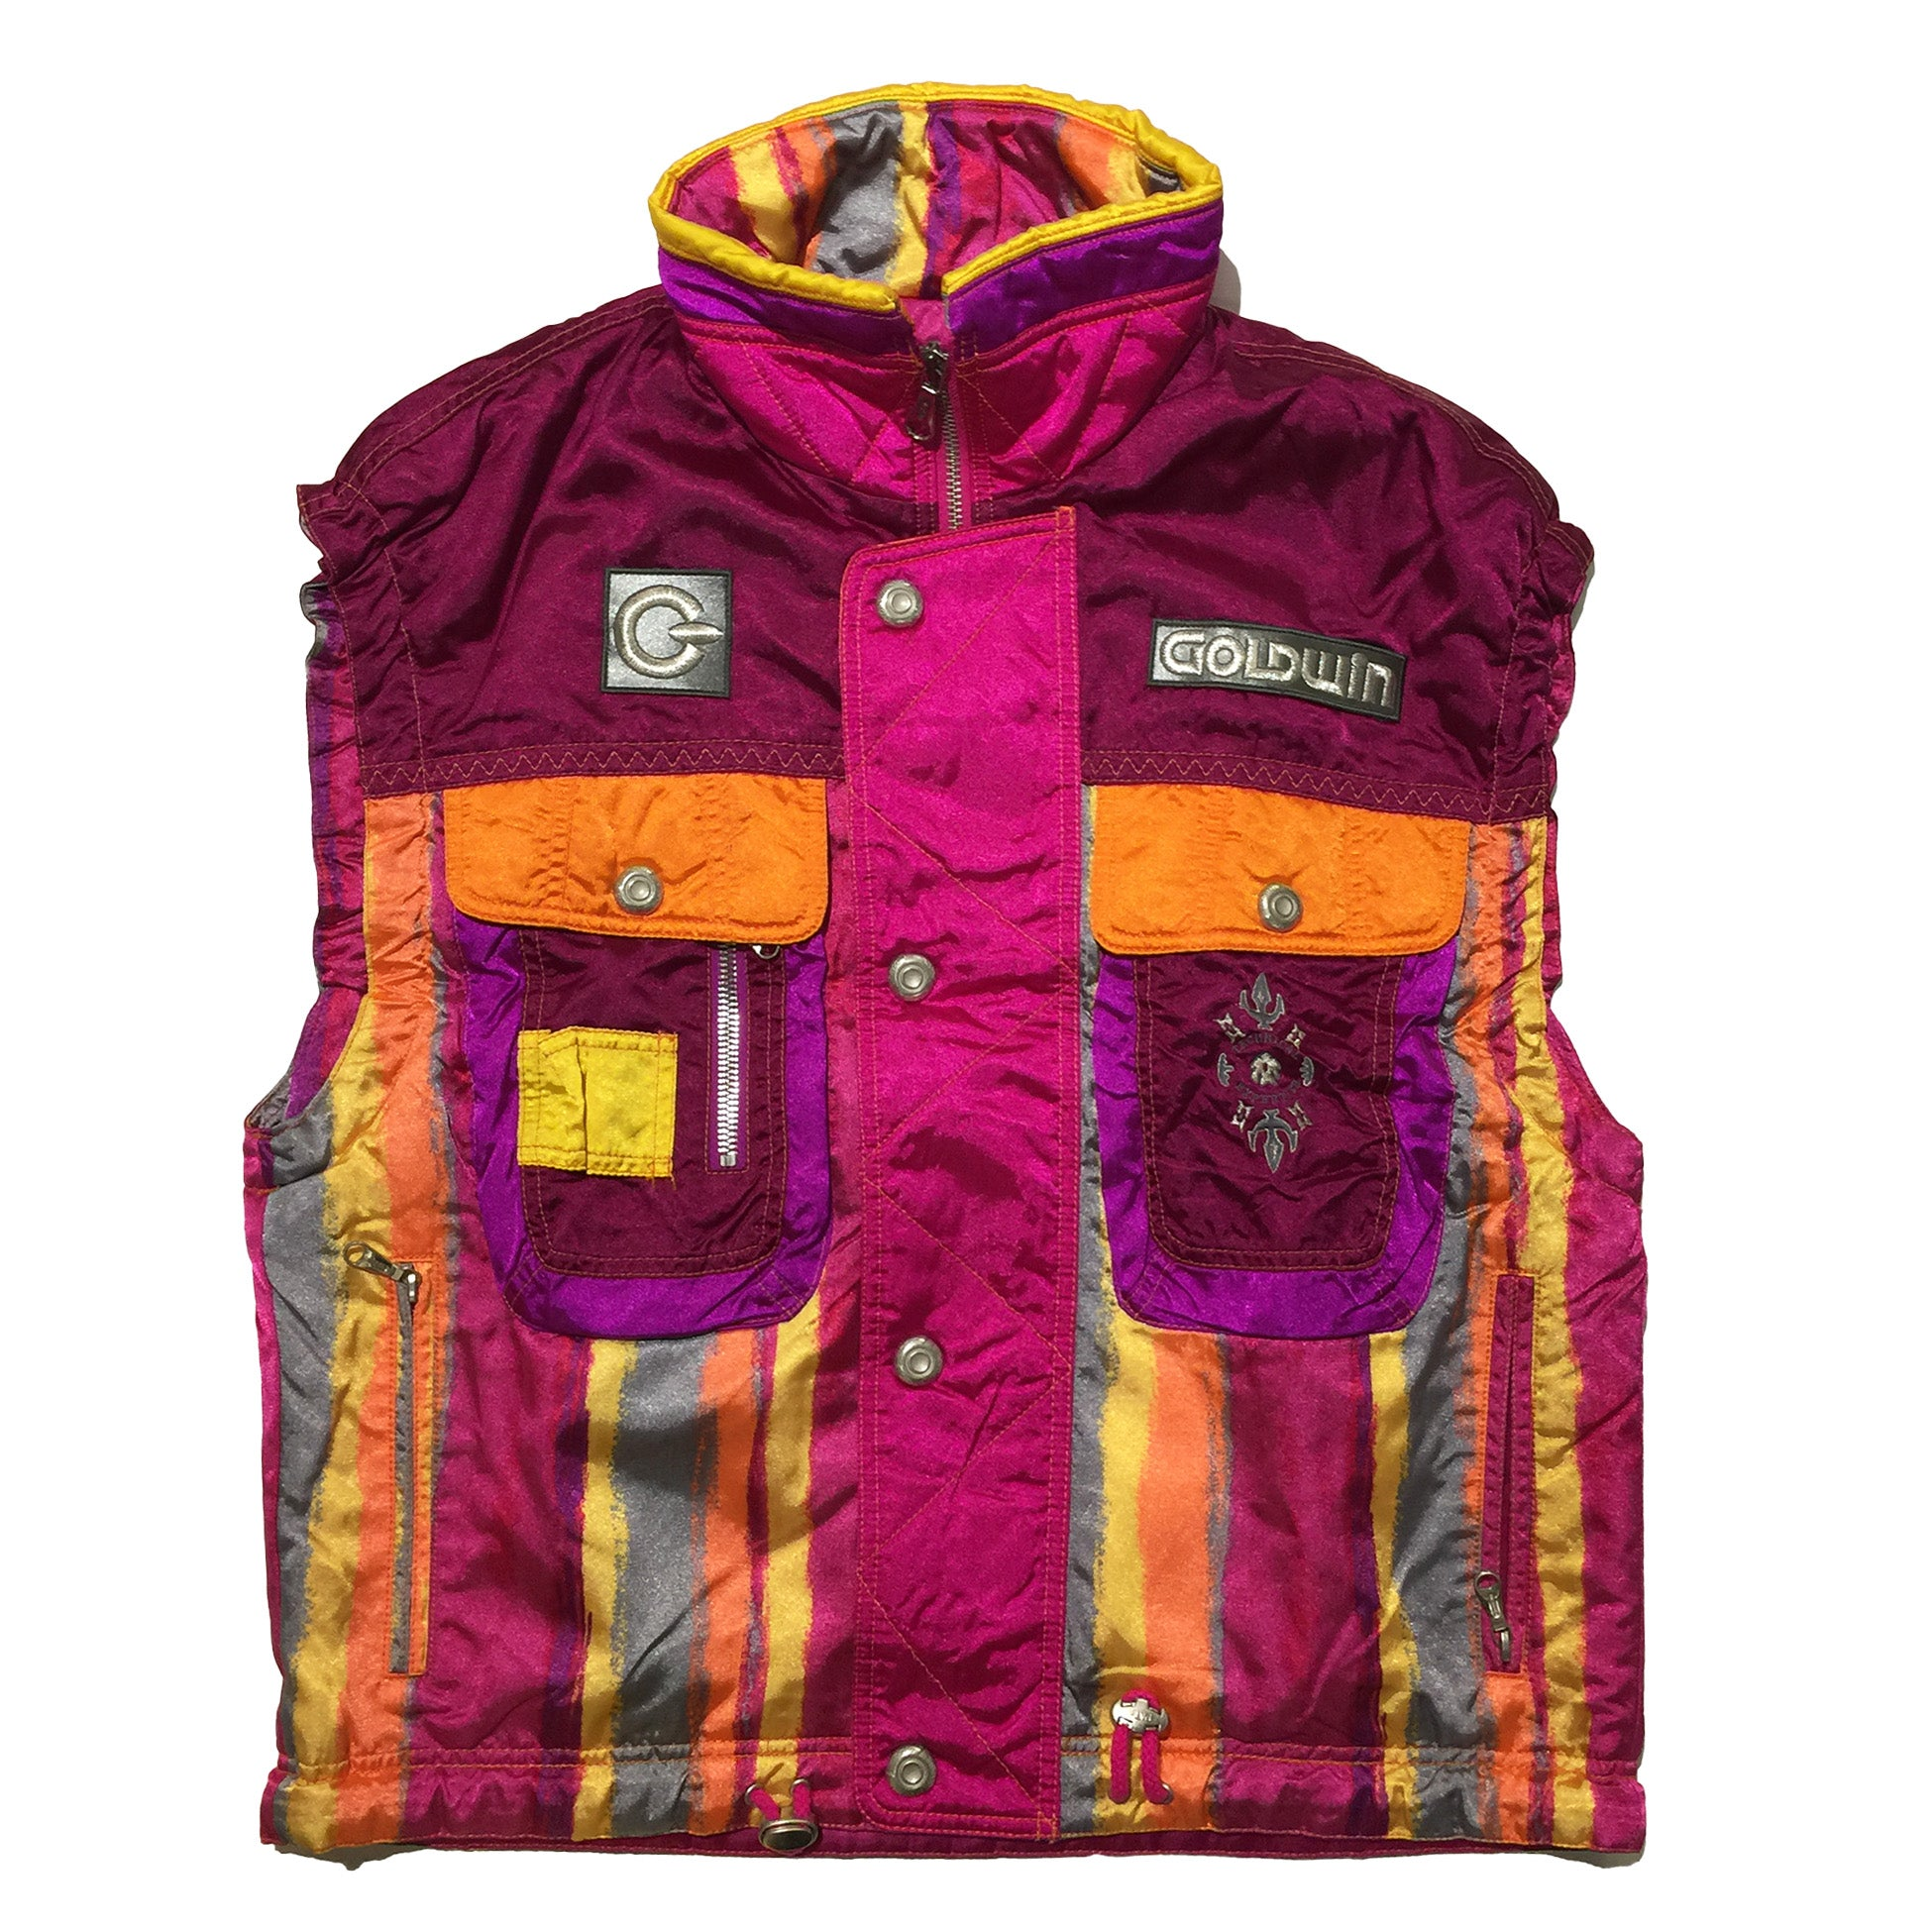 Goldwin Pink and Orange Ski Vest